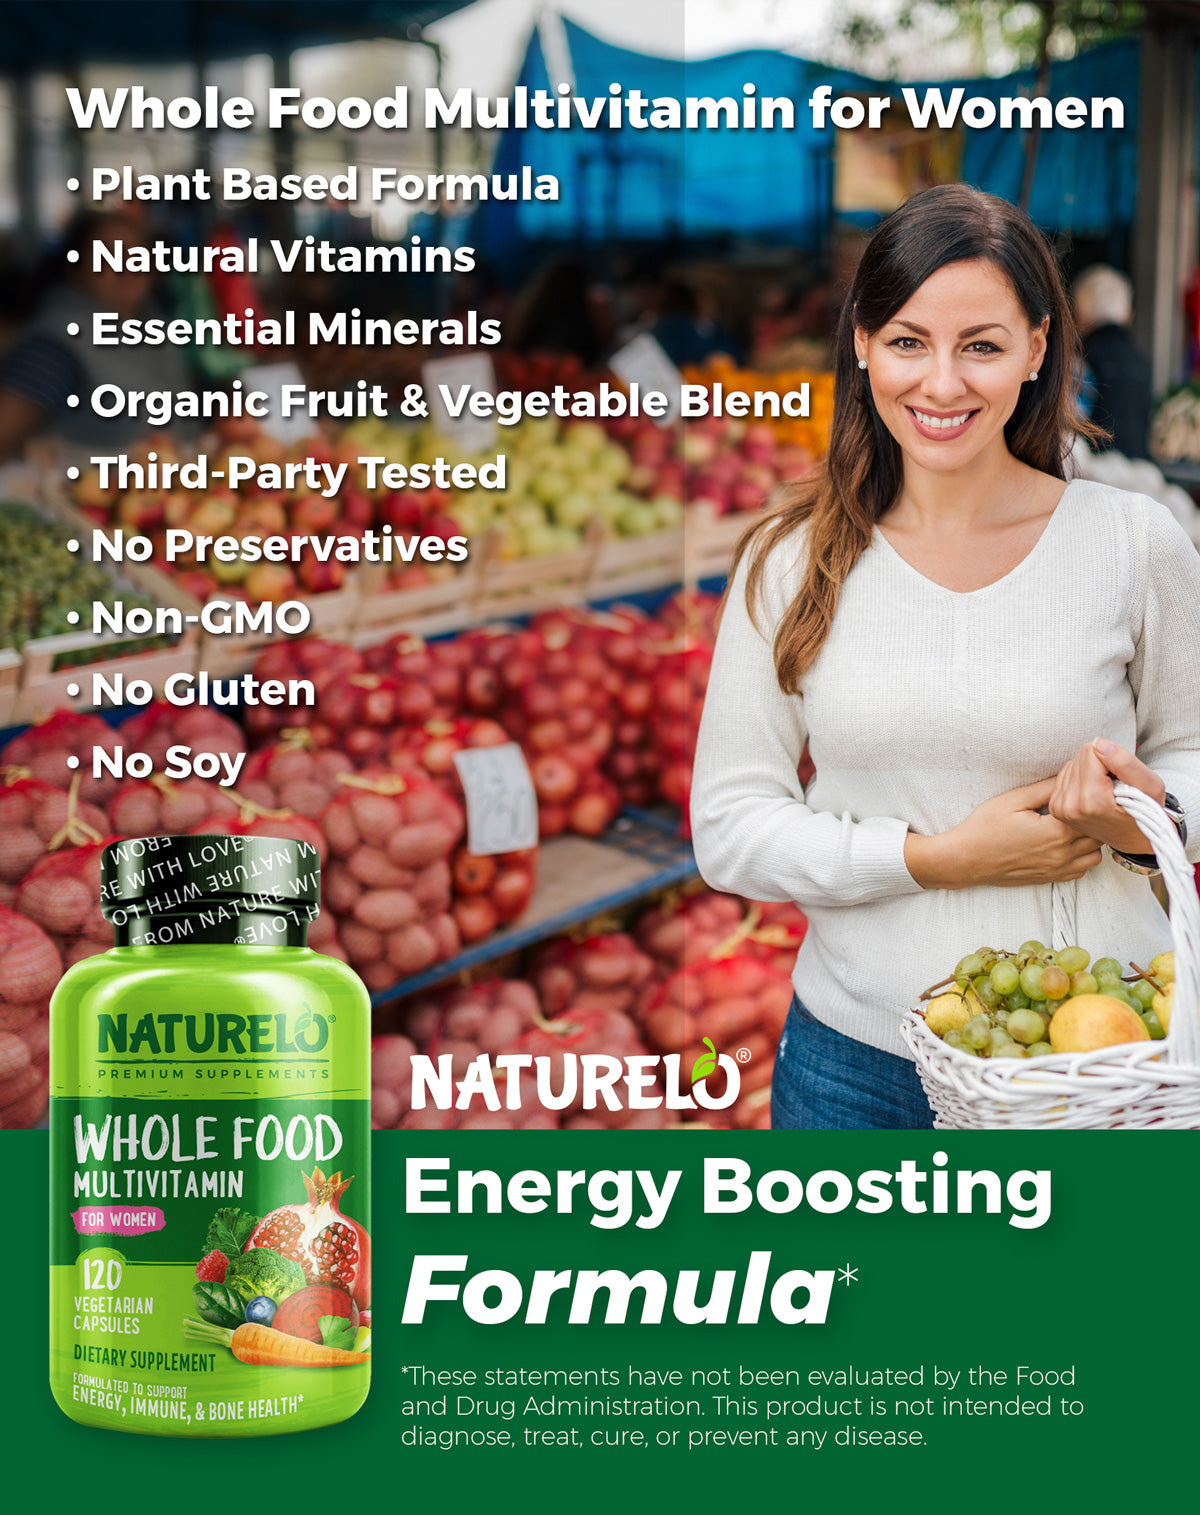 Whole Food Multivitamin for Women Features